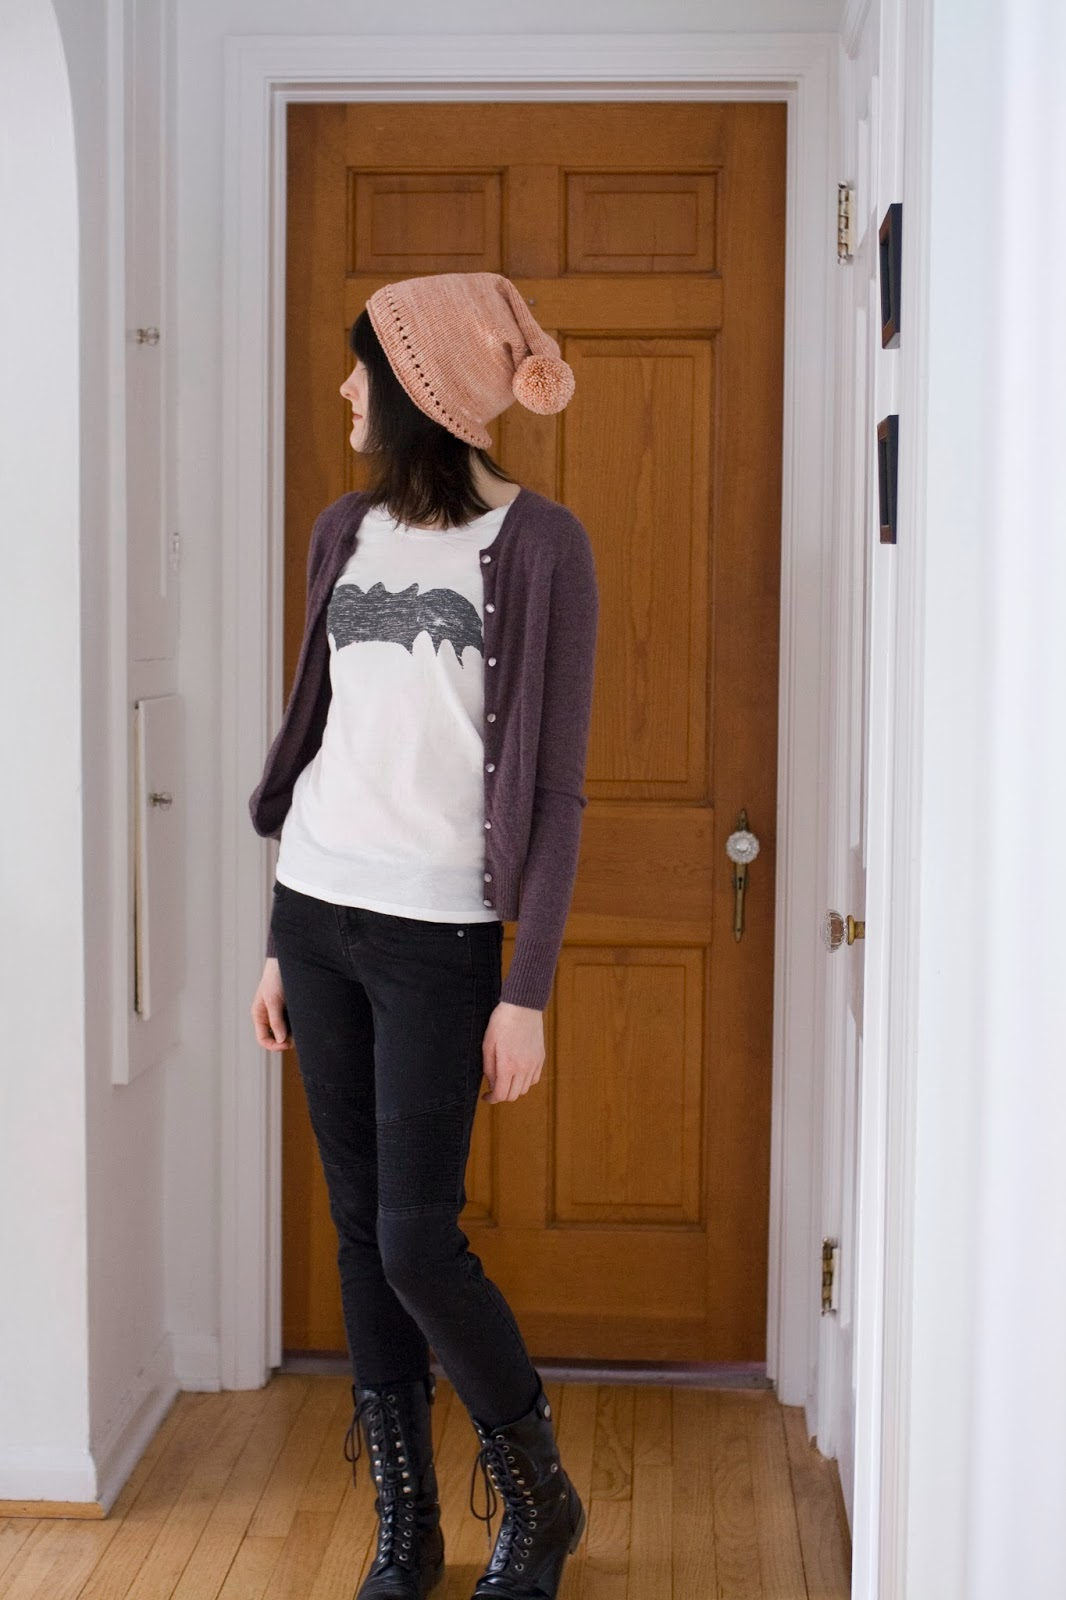 Bombasine.com: Sweater: J Crew / Shirt: cheap Chinese knockoff / Jeans: STS Blue / Boots: Rampage / Hat: handknit (design by Alexandra Tinsley)